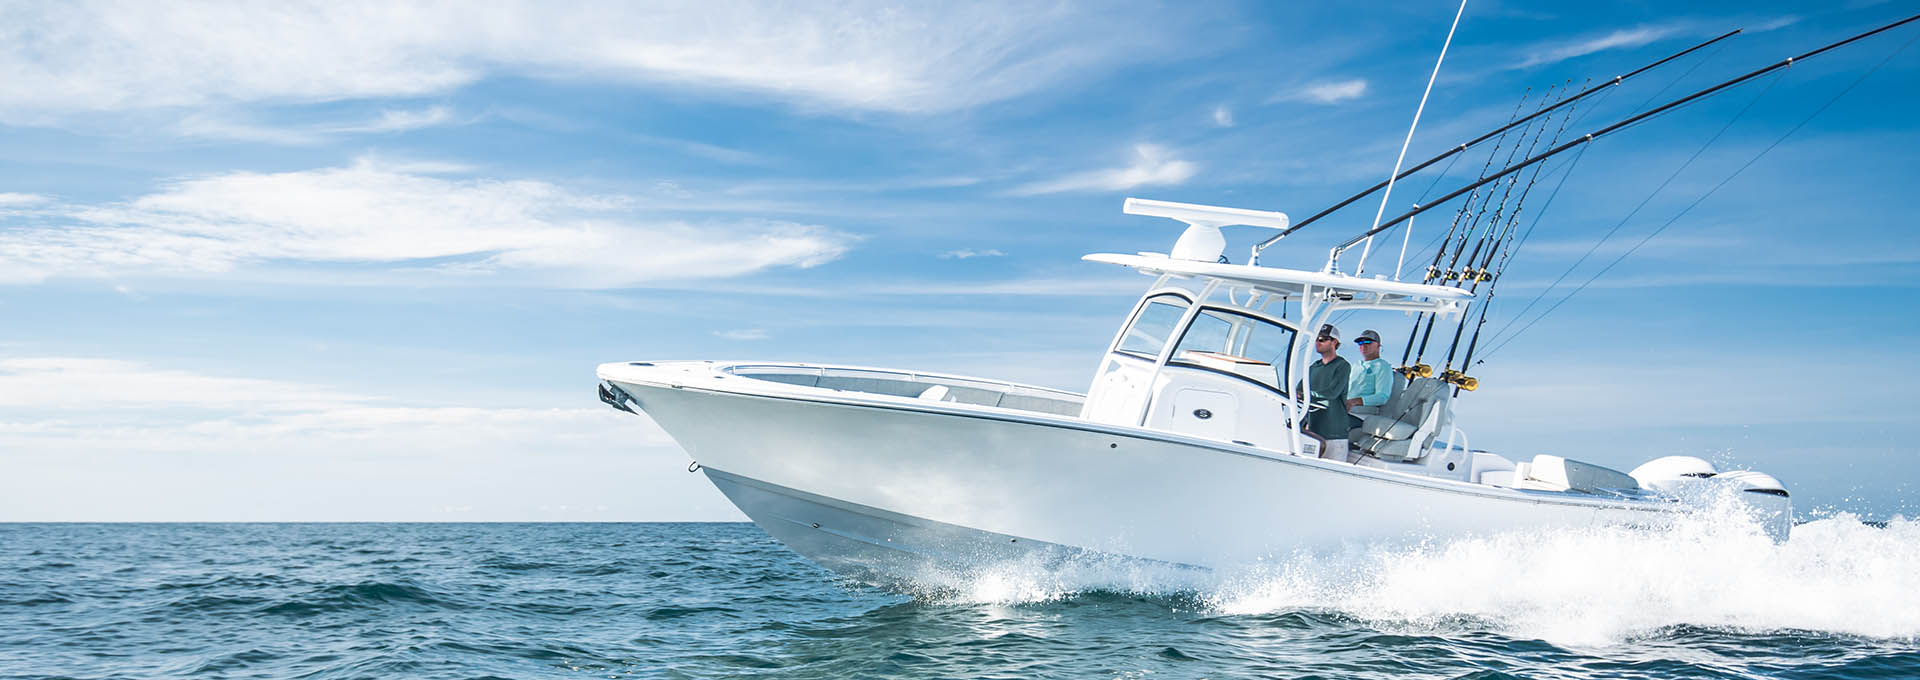 Open 312 with a gray hull bottom color running through open ocean with 2 anglers on-board.